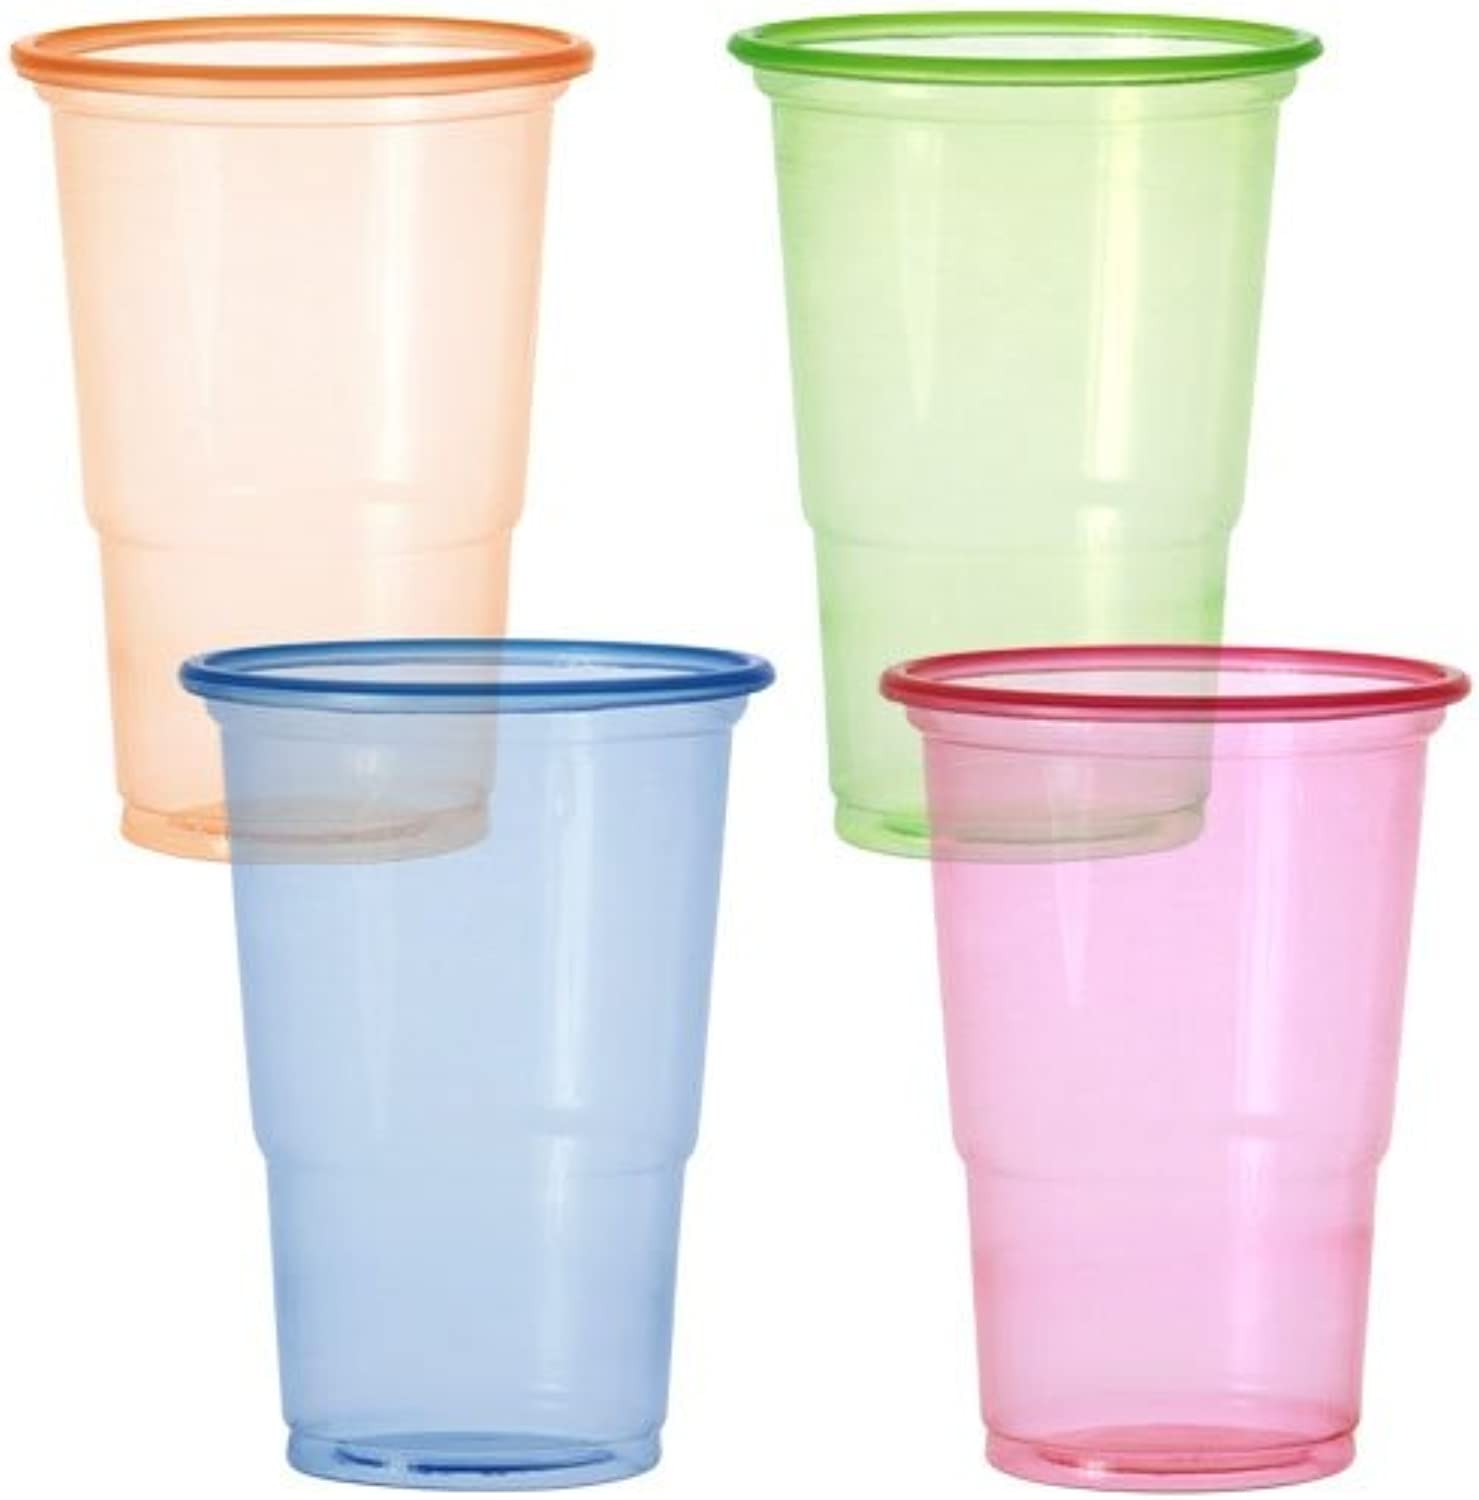 Party Dimensions 20 Count Plastic Cups, 10Ounce, Neonsorange, Pink, Green or, bluee